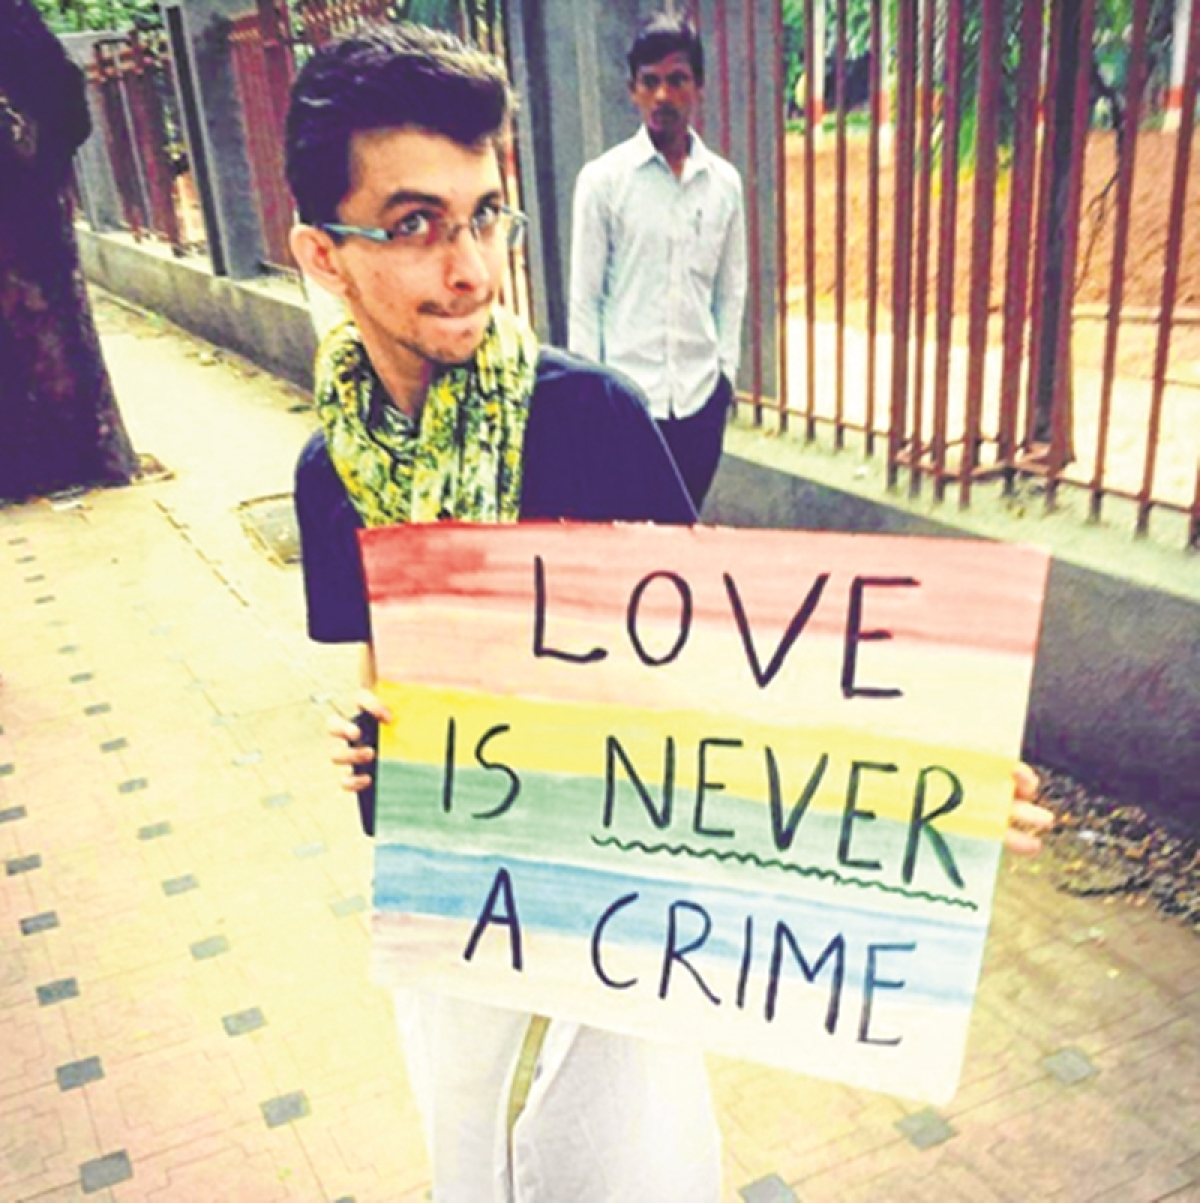 Section 377 Verdict: Love is not a crime, says activist Ankit Bhuptani